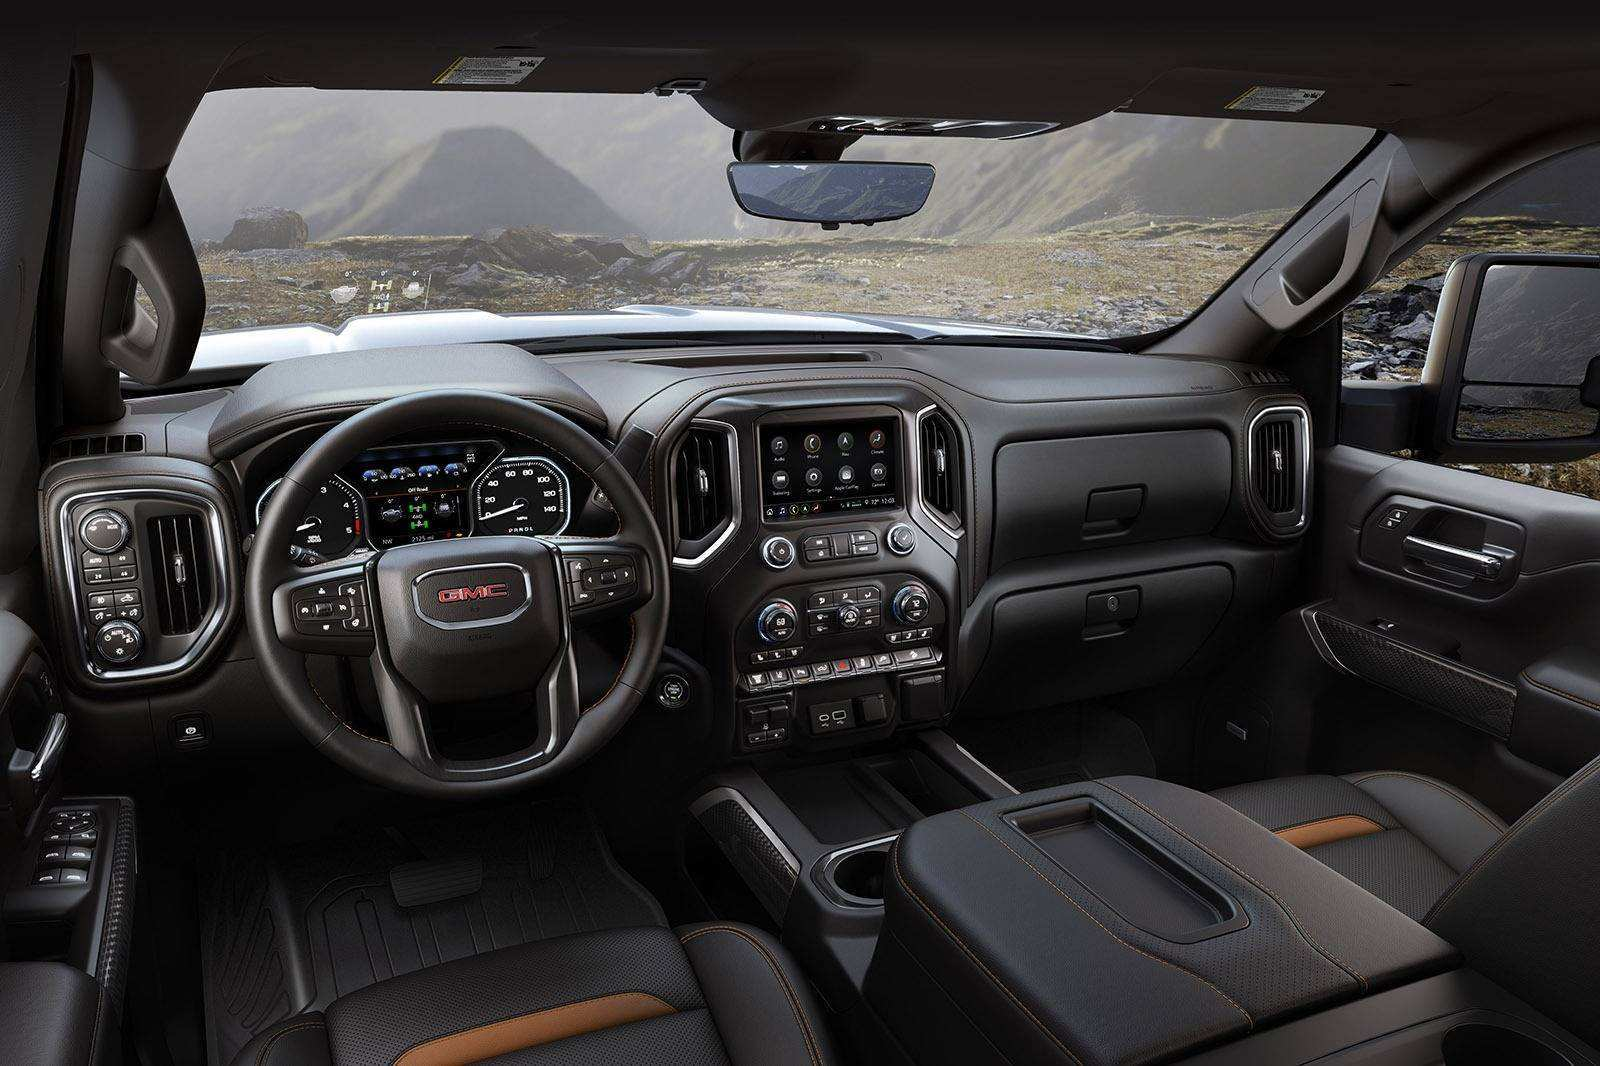 52 New Gmc Sierra 2020 Price Overview with Gmc Sierra 2020 Price